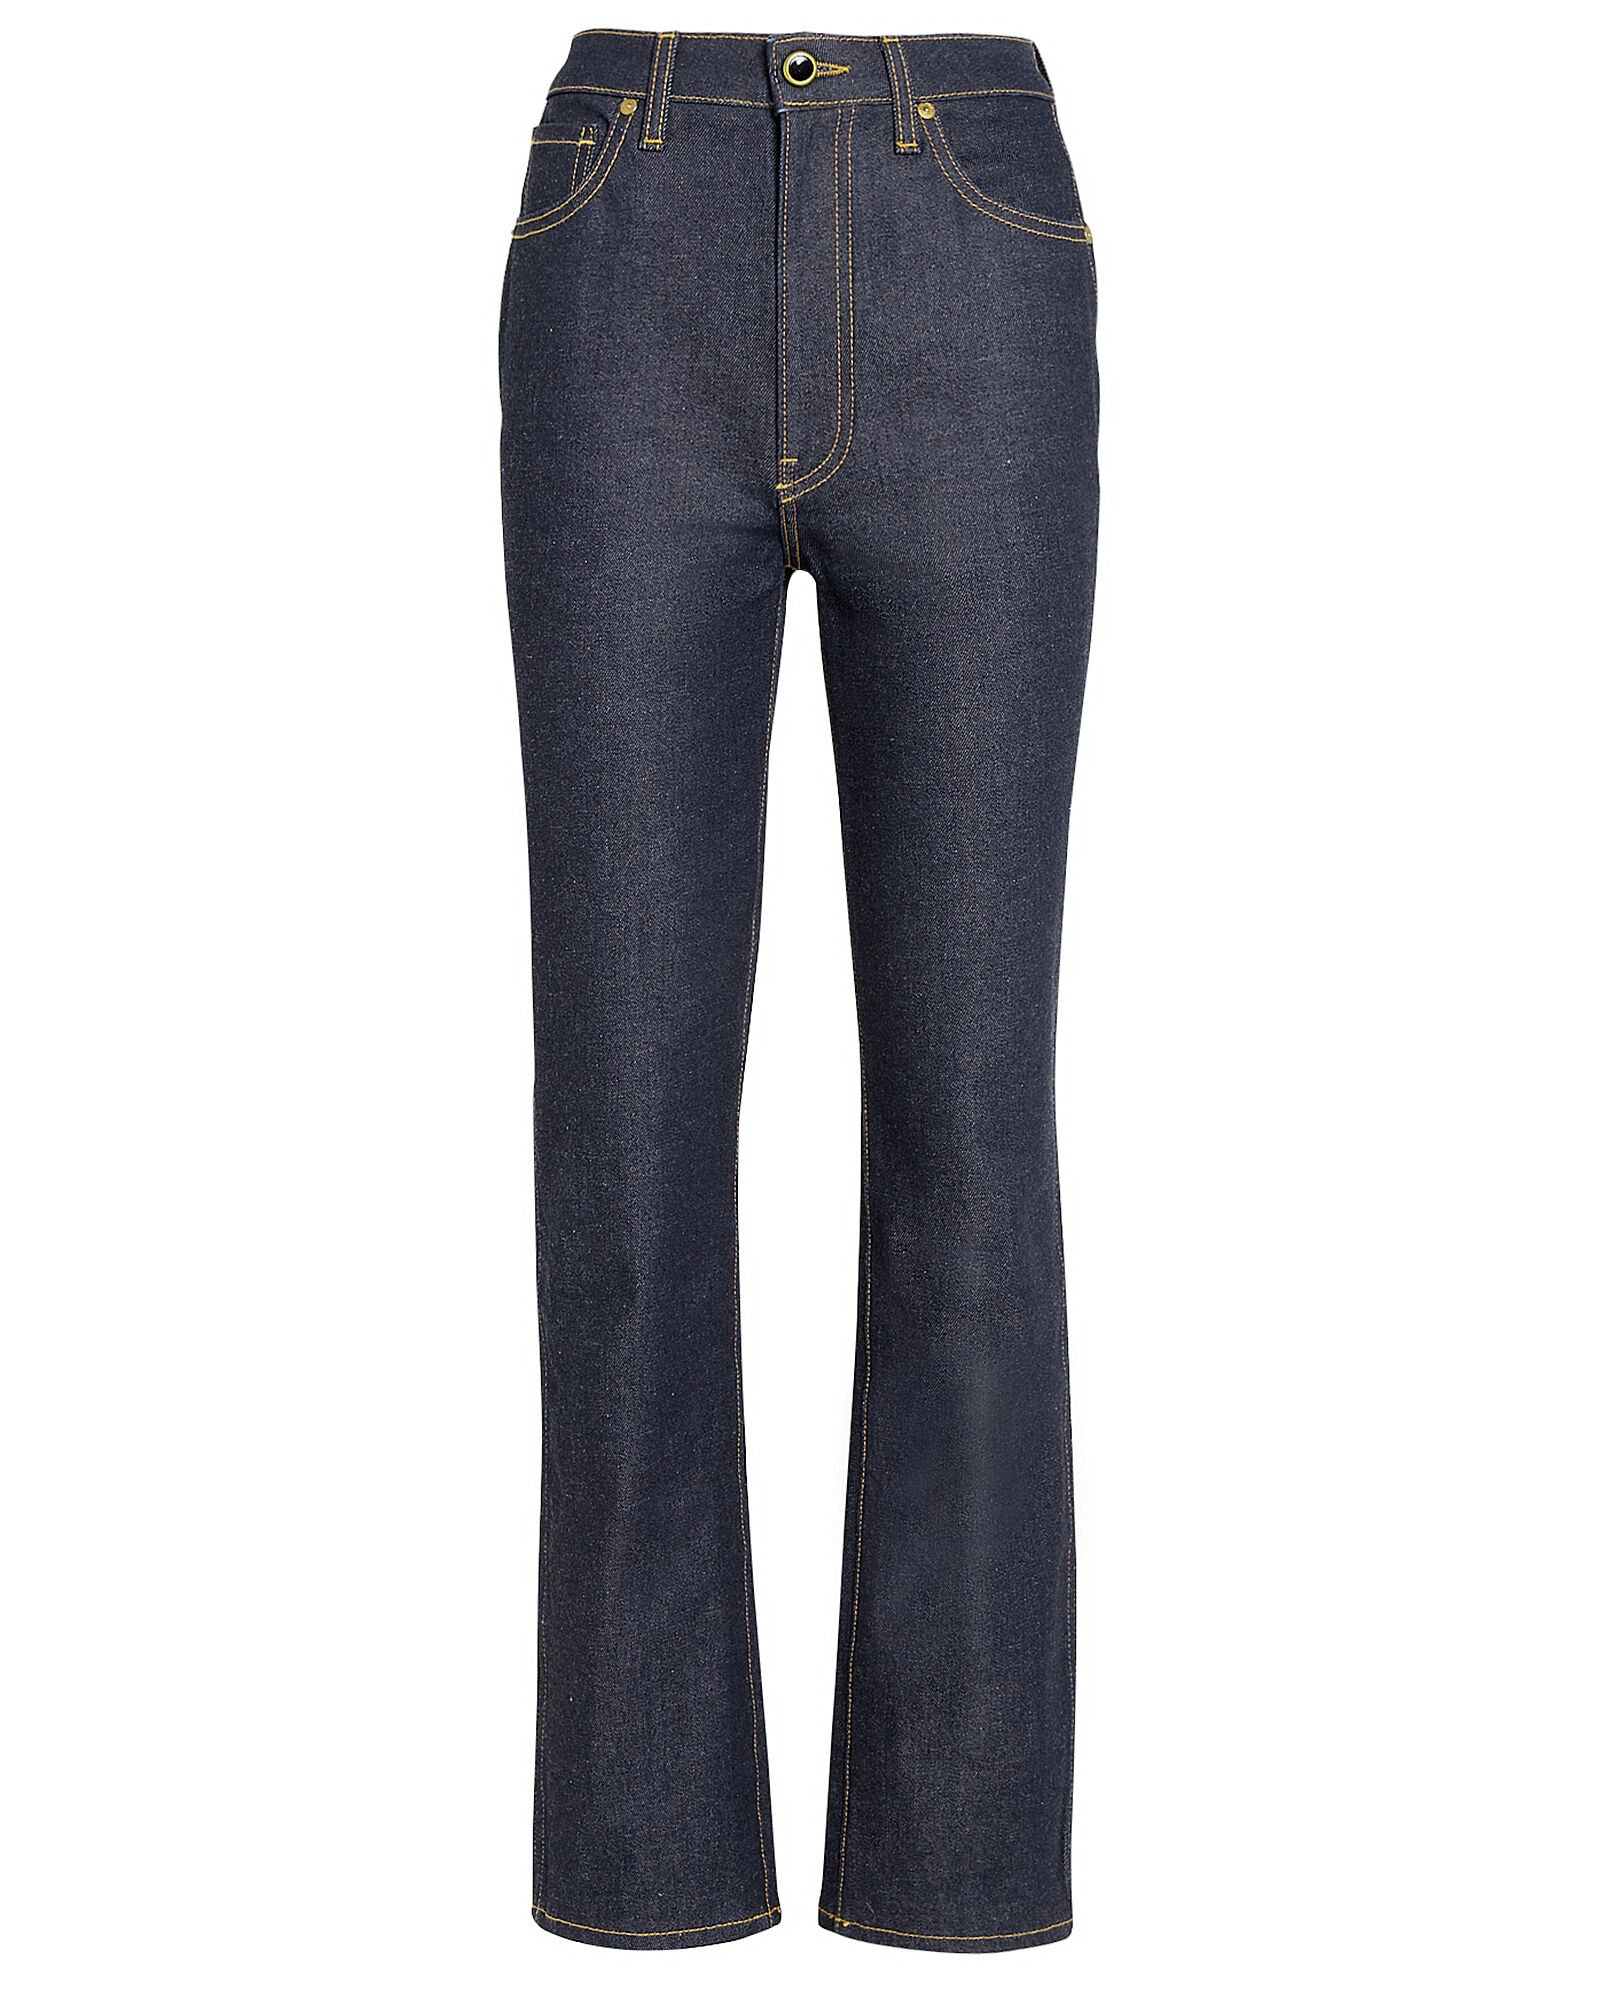 Victoria High-Rise Straight Jeans, MEDIUM INDIGO DENIM, hi-res